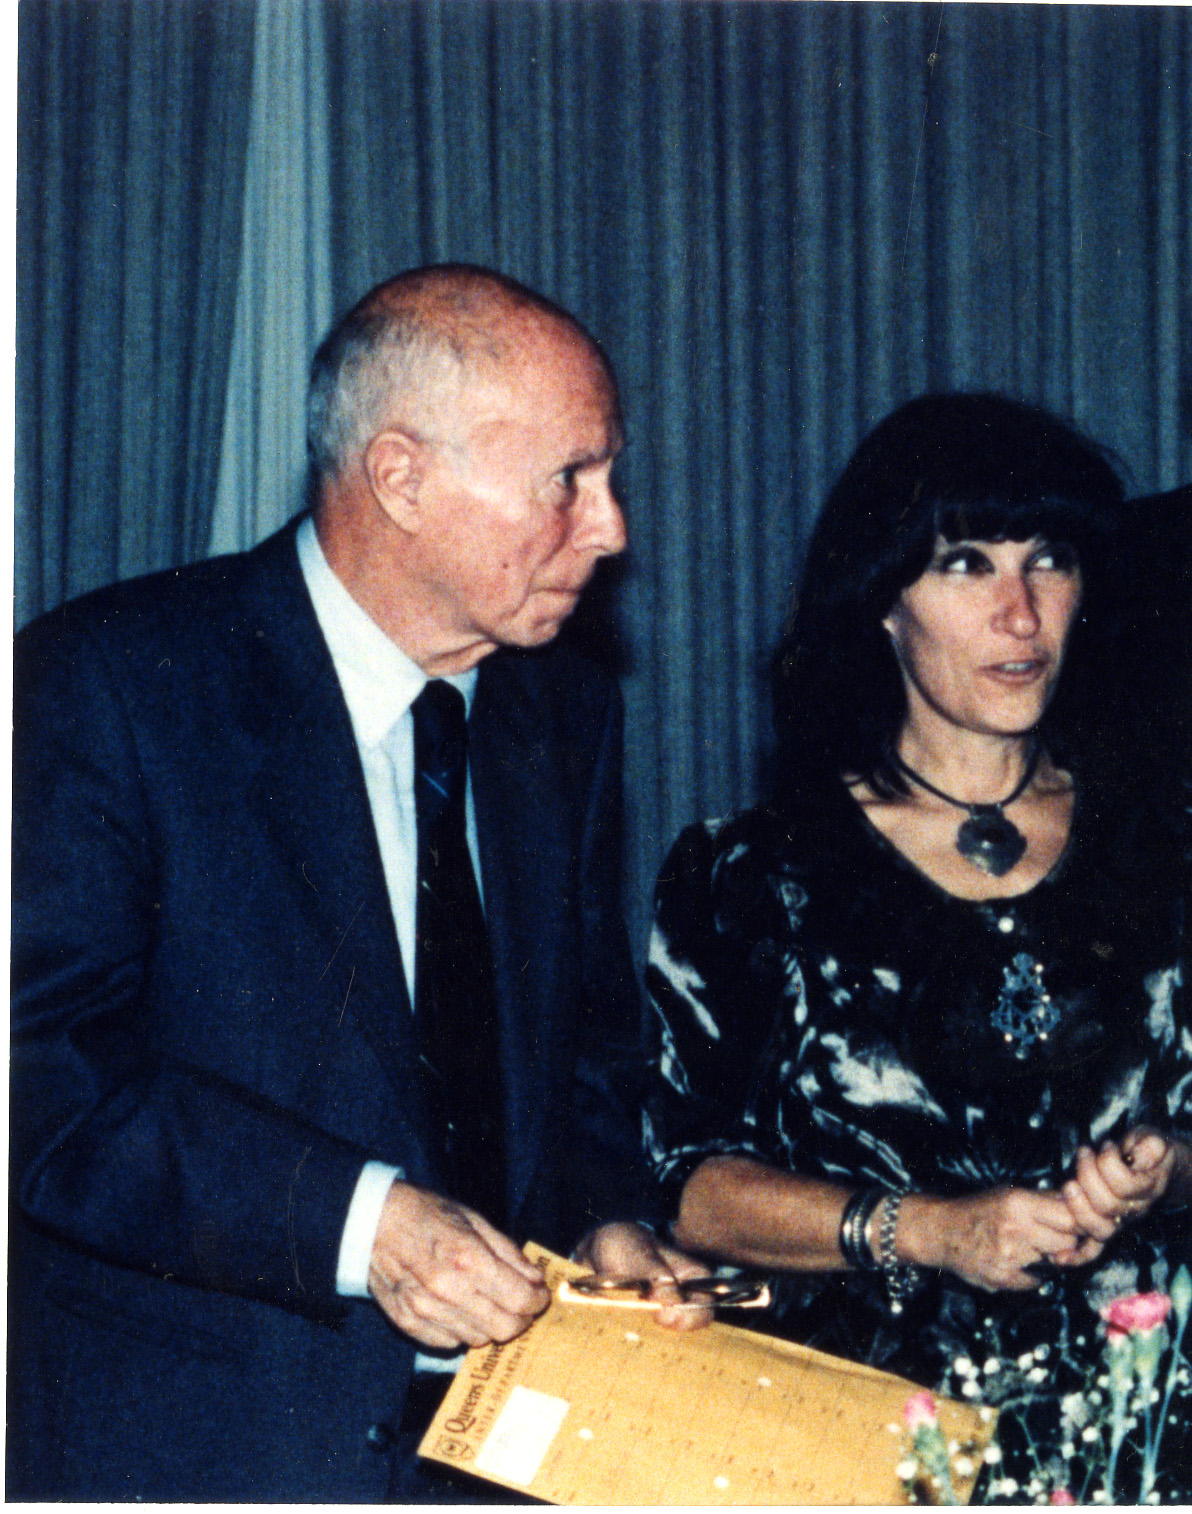 Claude Simon, Queen's University, doctorat Honoris causa, Novembre 1993